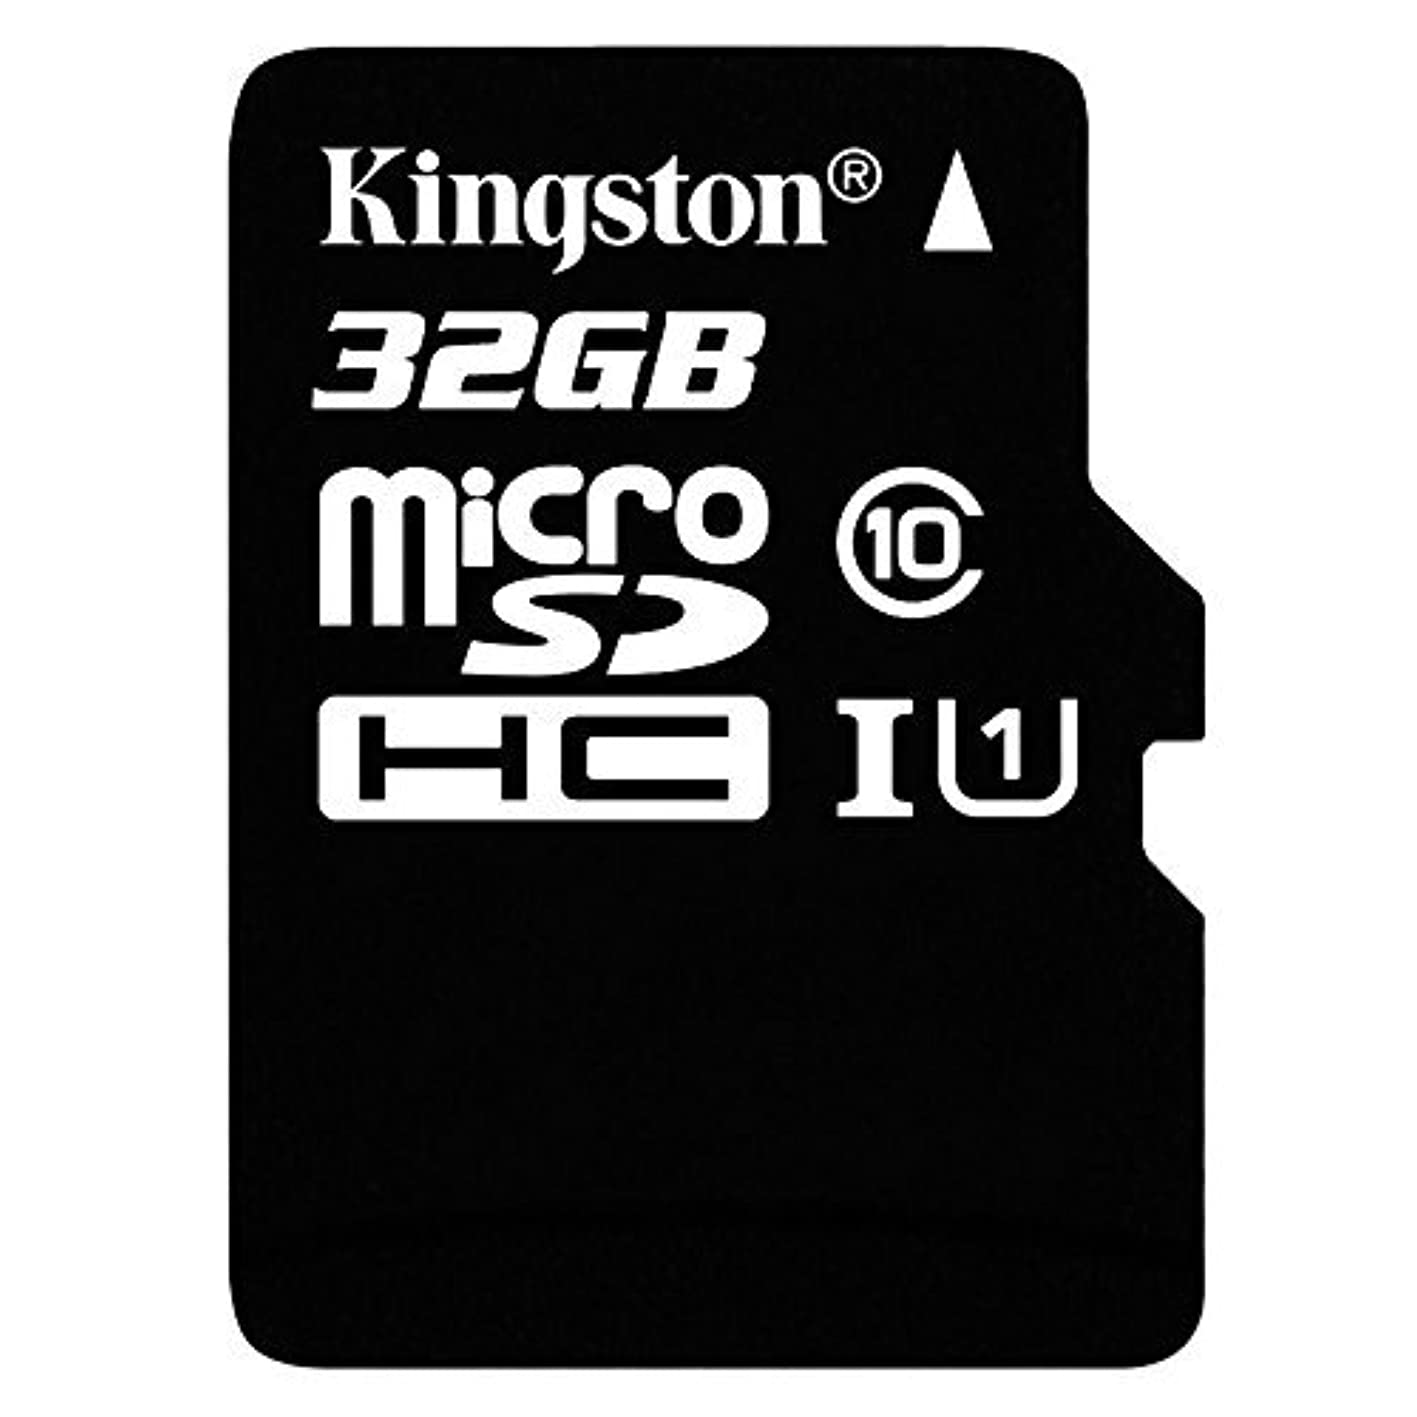 マトリックスオープナー恥ずかしいProfessional Kingston 32GB BLU Life XL MicroSDHC Card with custom formatting and Standard SD Adapter! (Class 10, UHS-I) [並行輸入品]